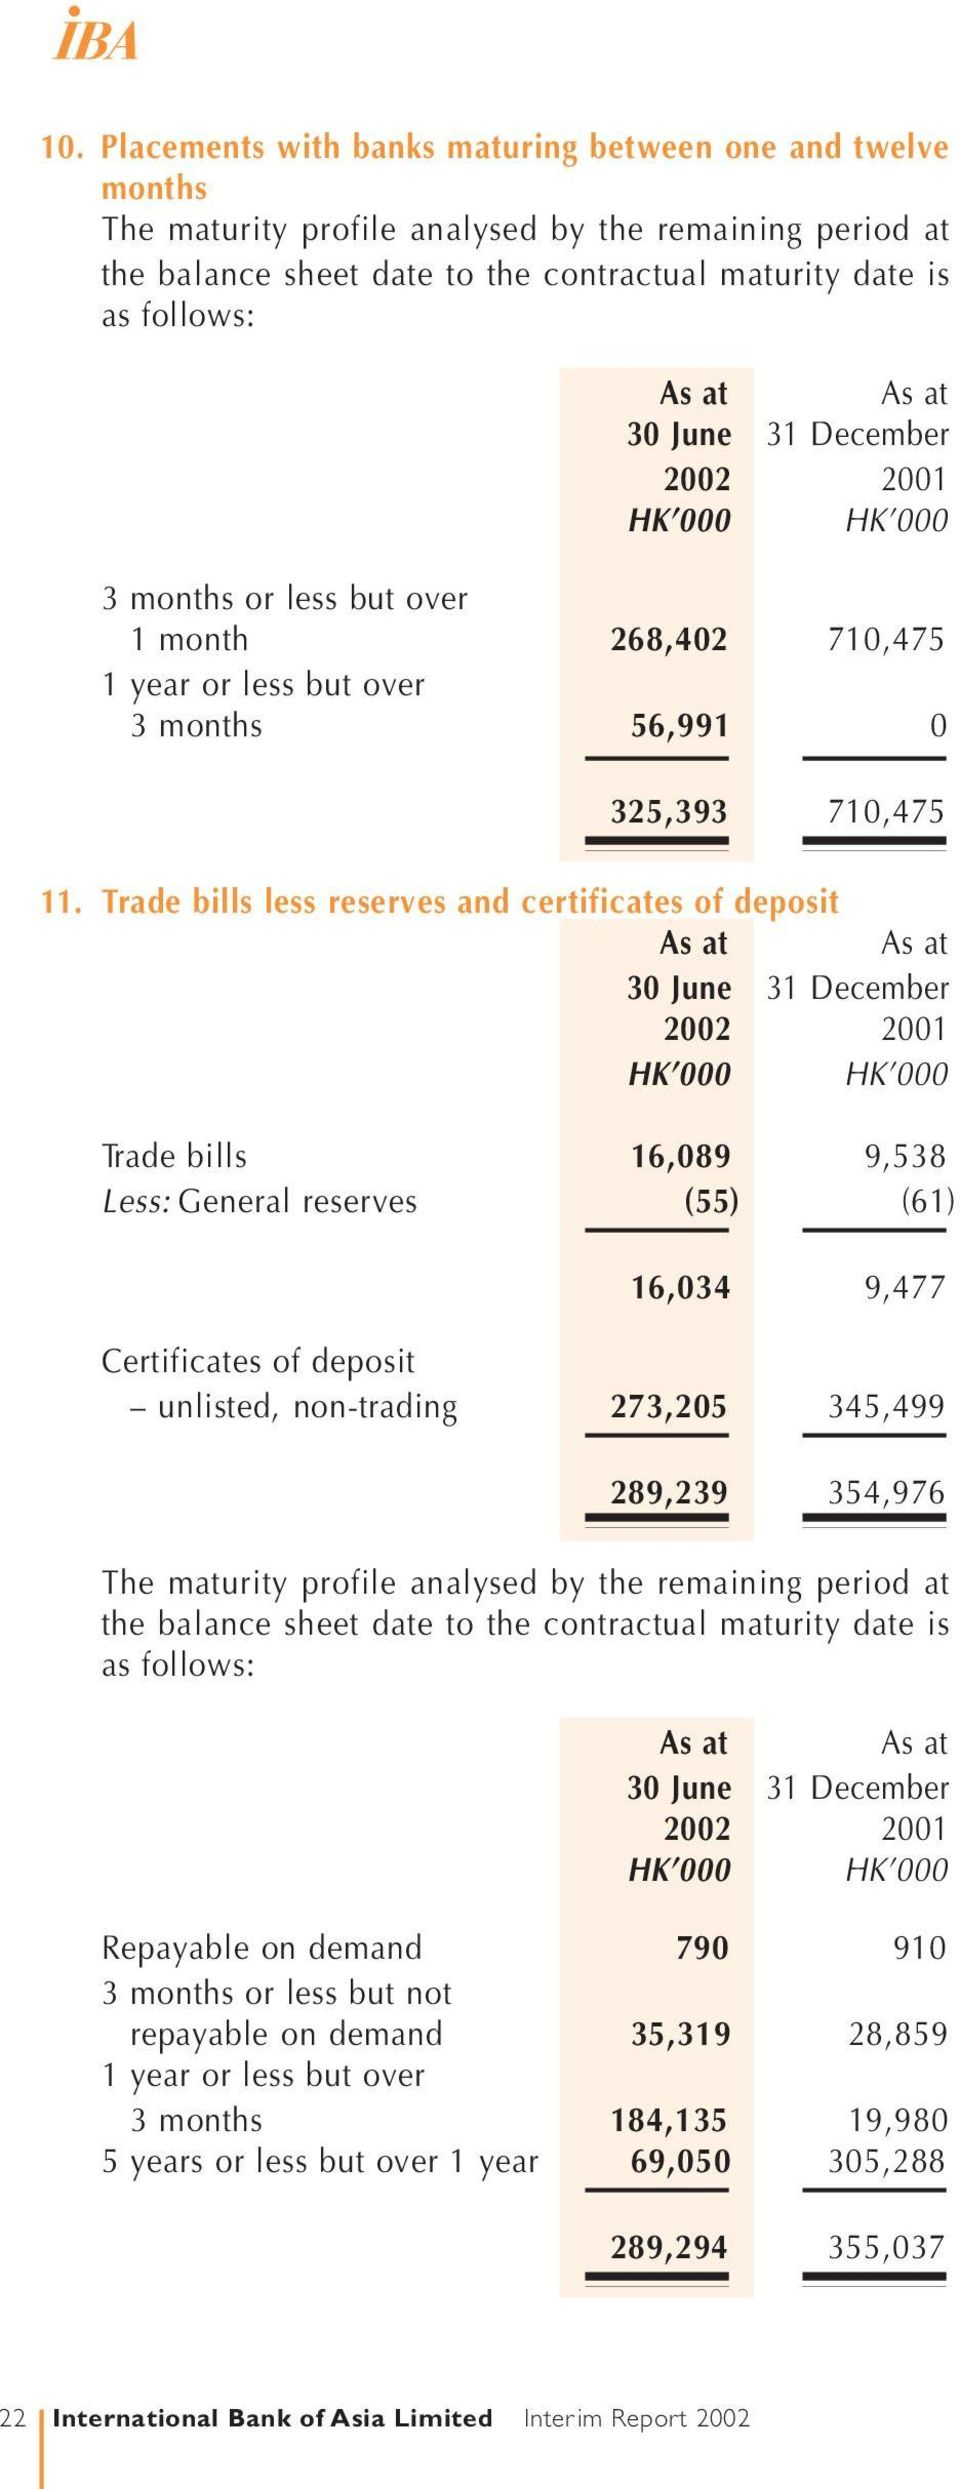 Trade bills less reserves and certificates of deposit Trade bills 16,089 9,538 Less: General reserves (55) (61) 16,034 9,477 Certificates of deposit unlisted, non-trading 273,205 345,499 289,239